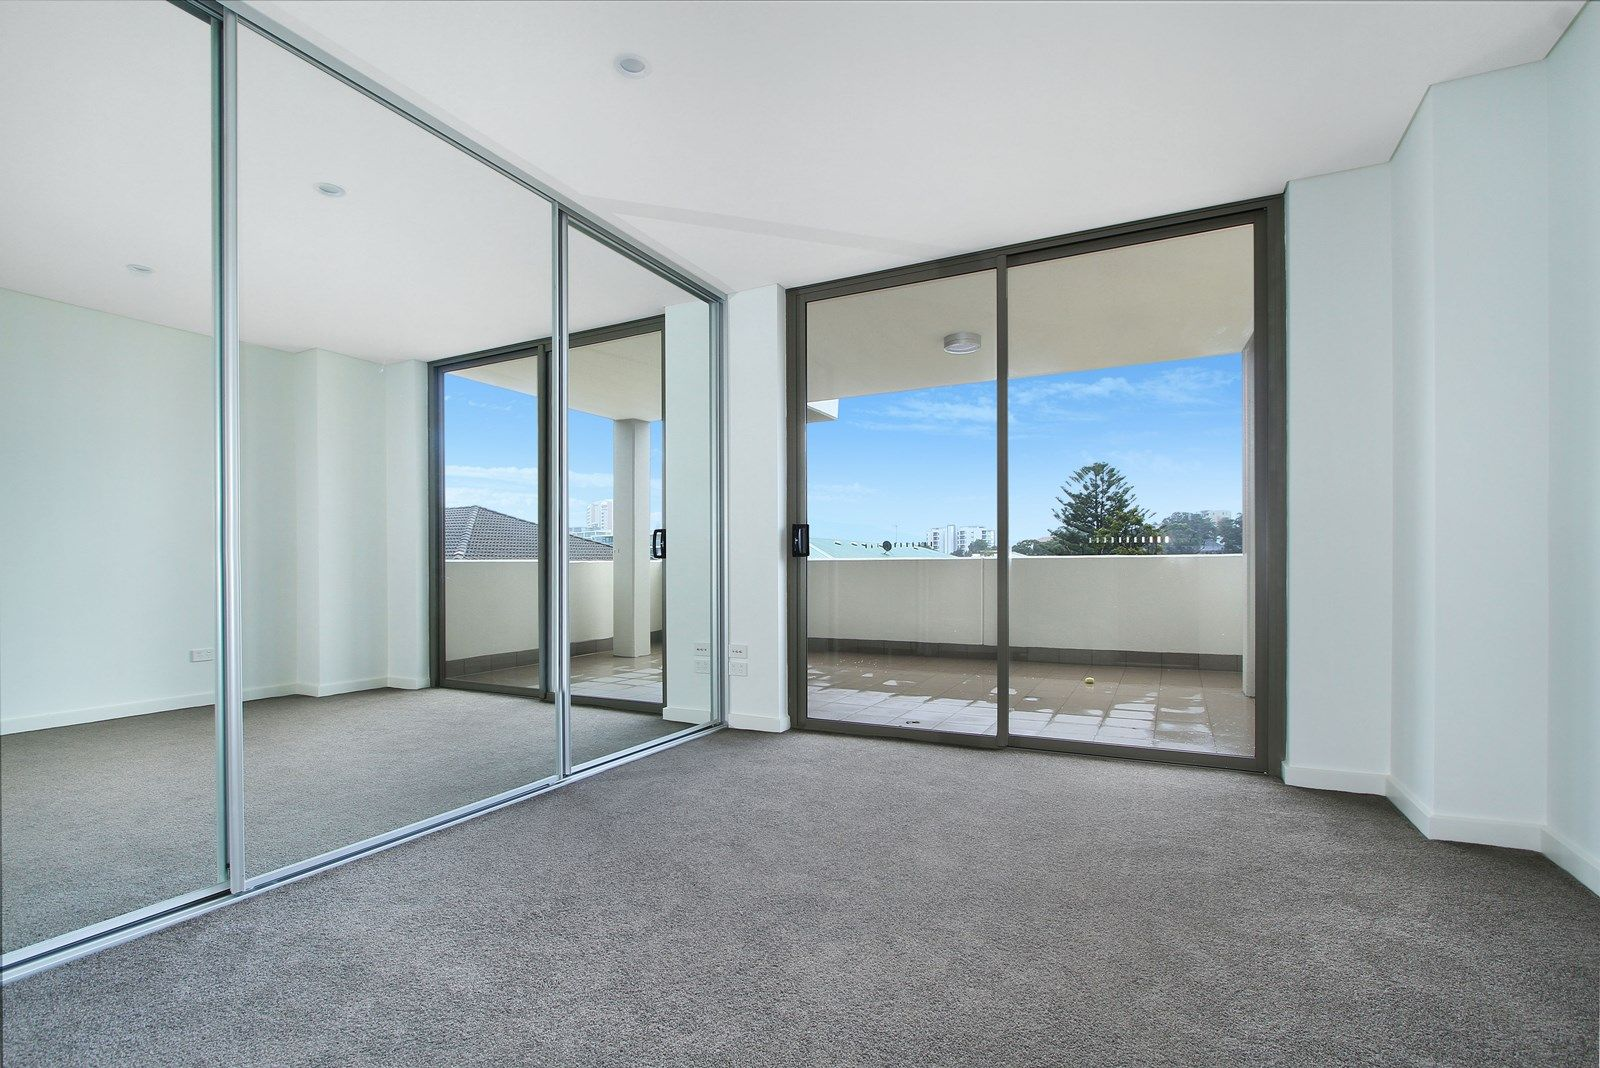 11/88 Smith Street, Wollongong NSW 2500, Image 1